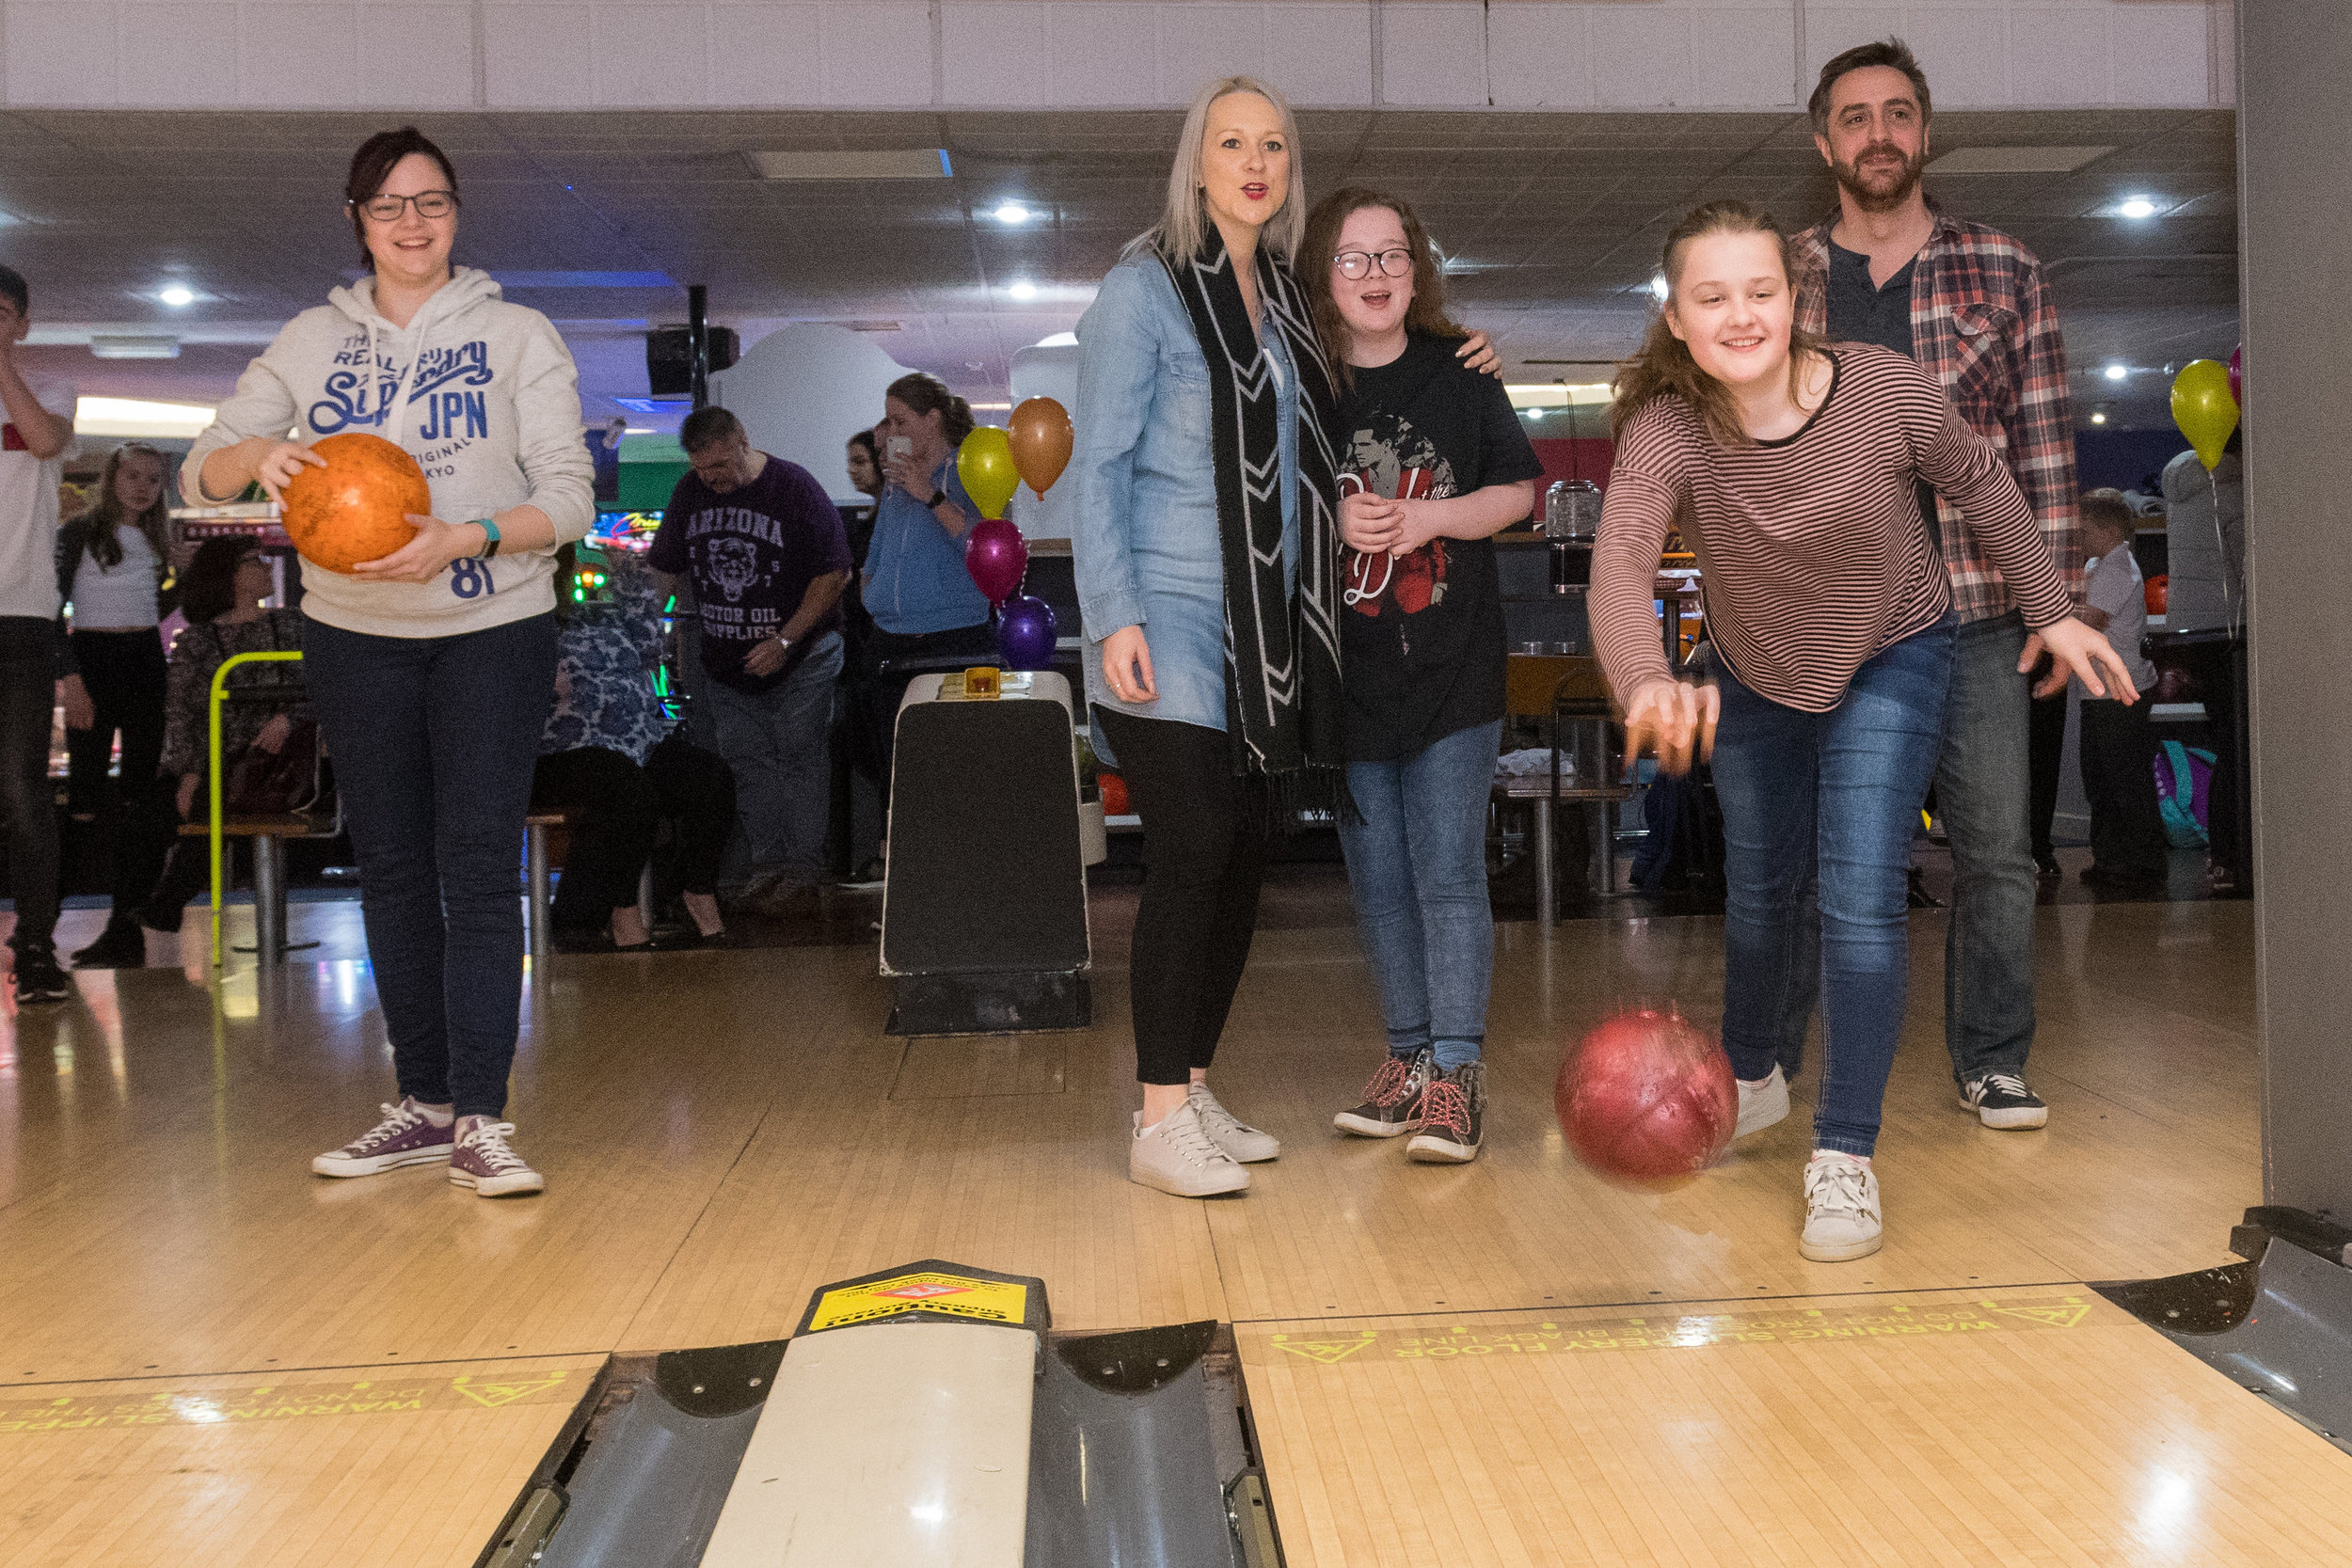 Tenpin Derby are hosting a Family Fun Day in aid of East Midlands-based charity When You Wish Upon A Star. Penguin PR: public relations, media and communications.